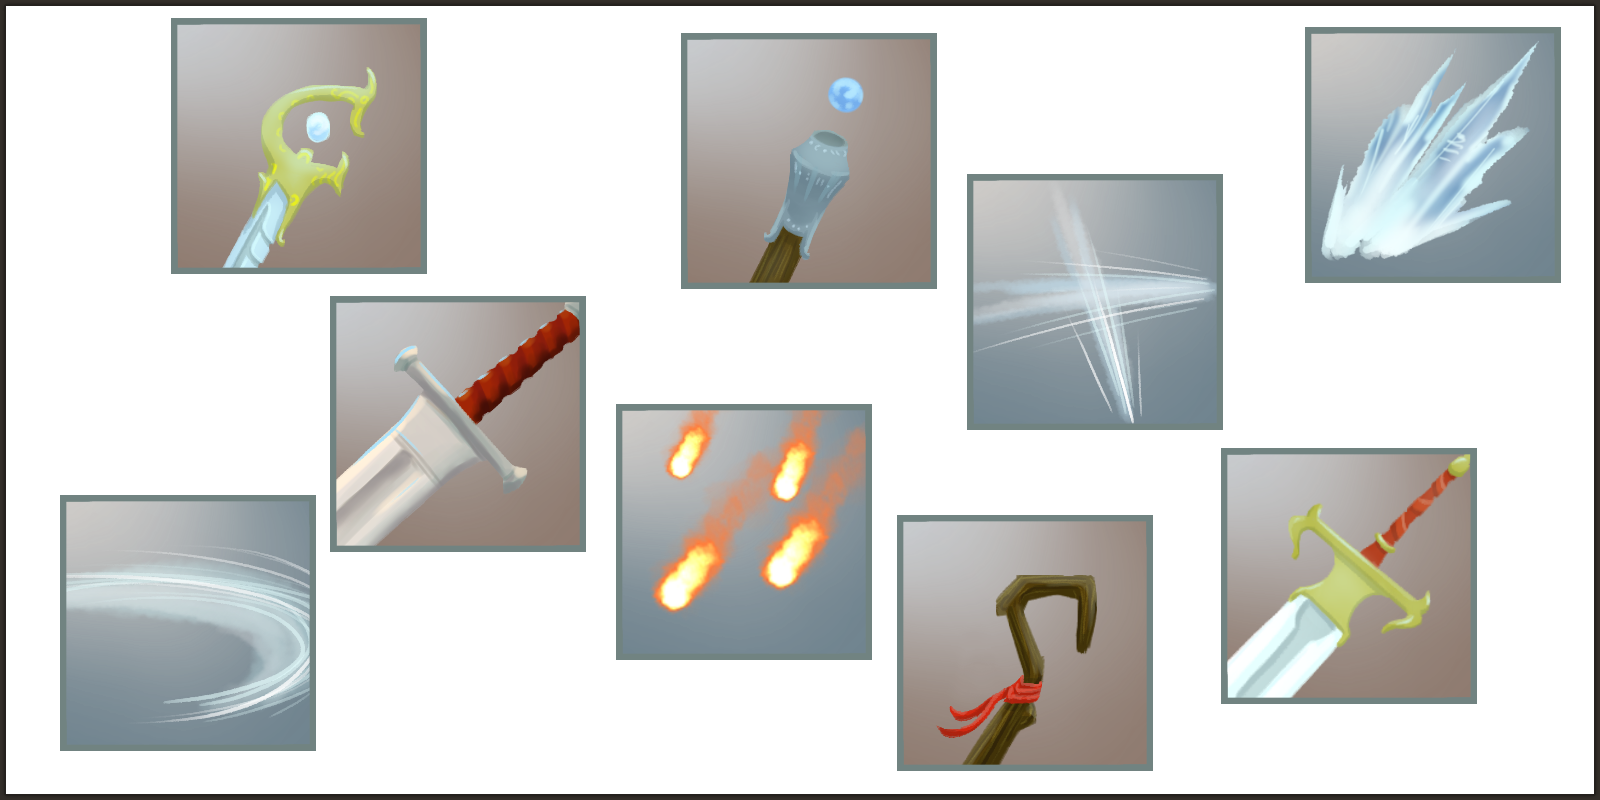 progress - 21 items